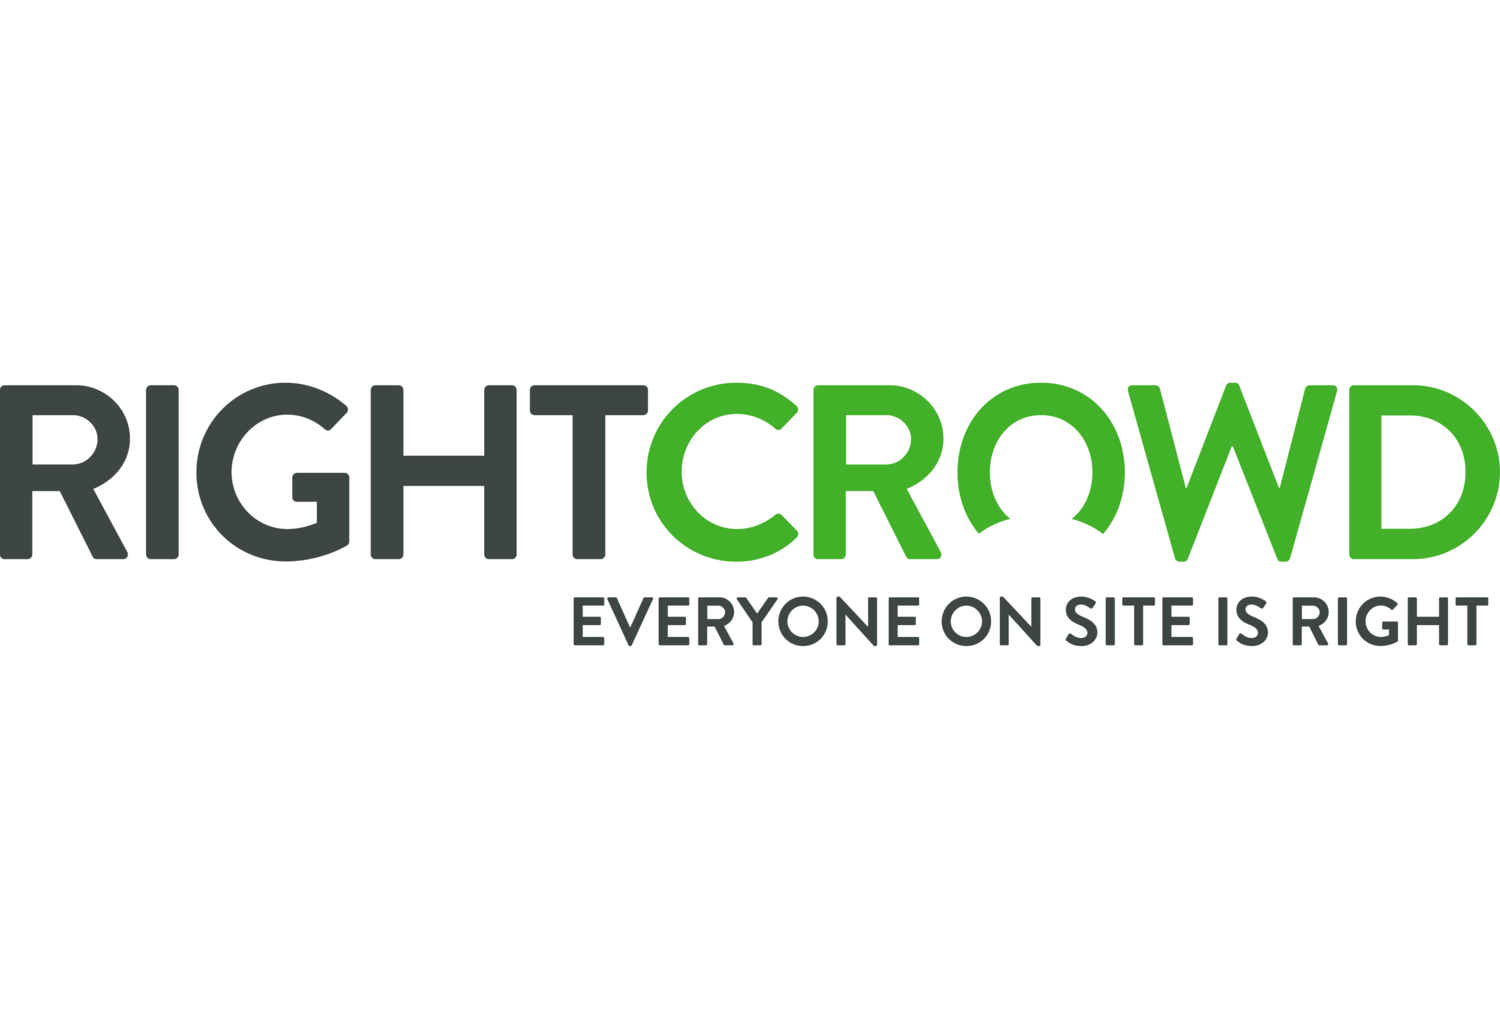 Rightcrowd